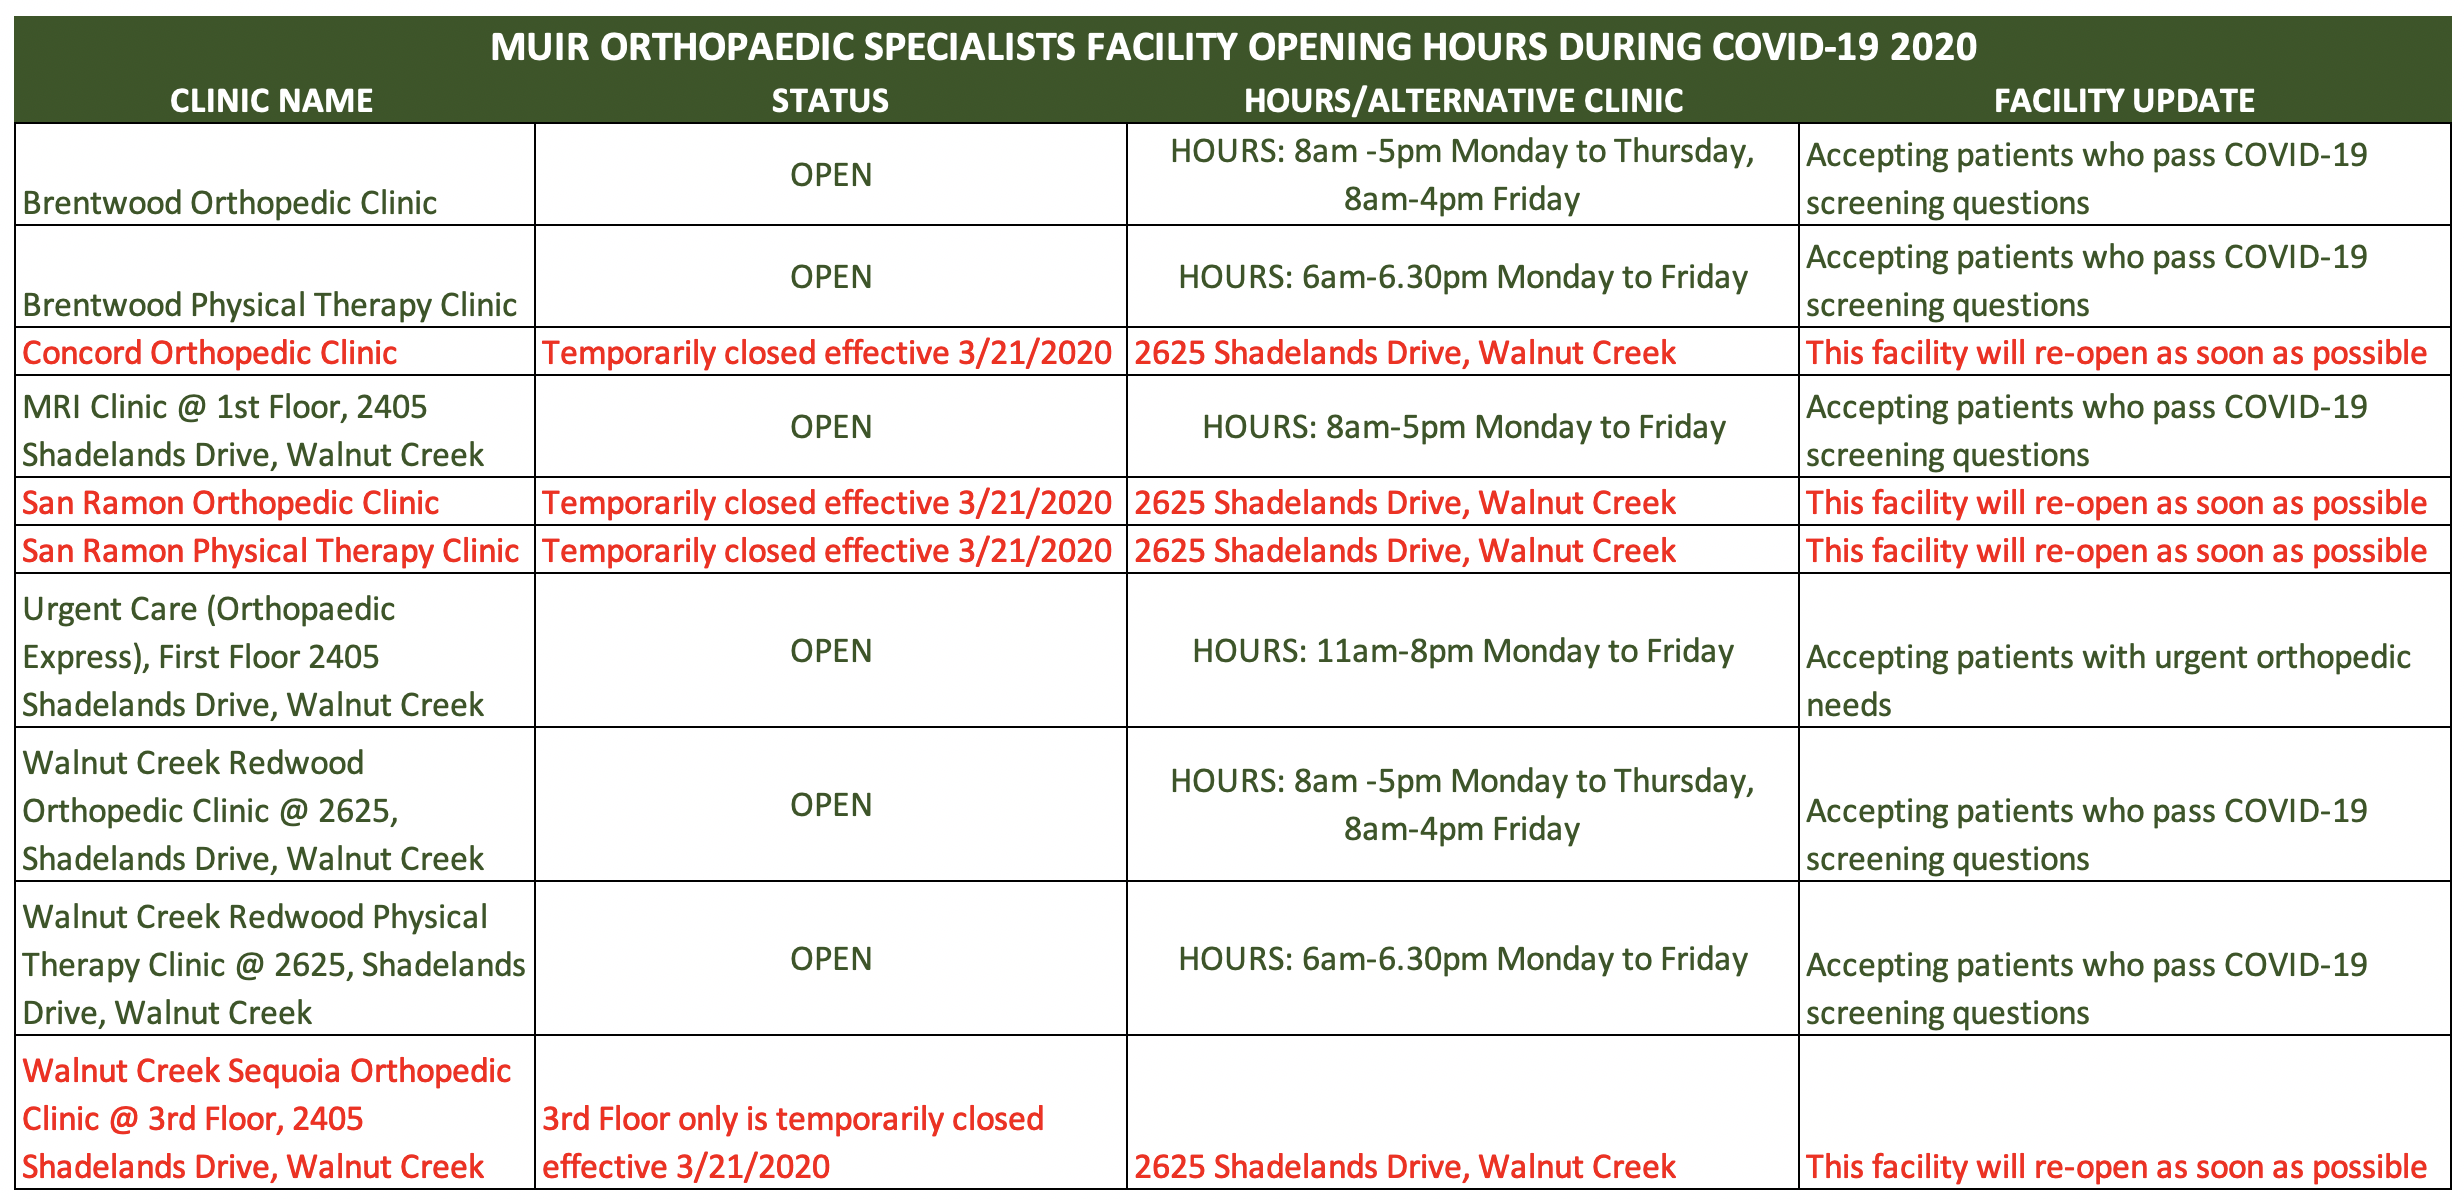 Muir Orthopaedics temporary hours during COVID-19